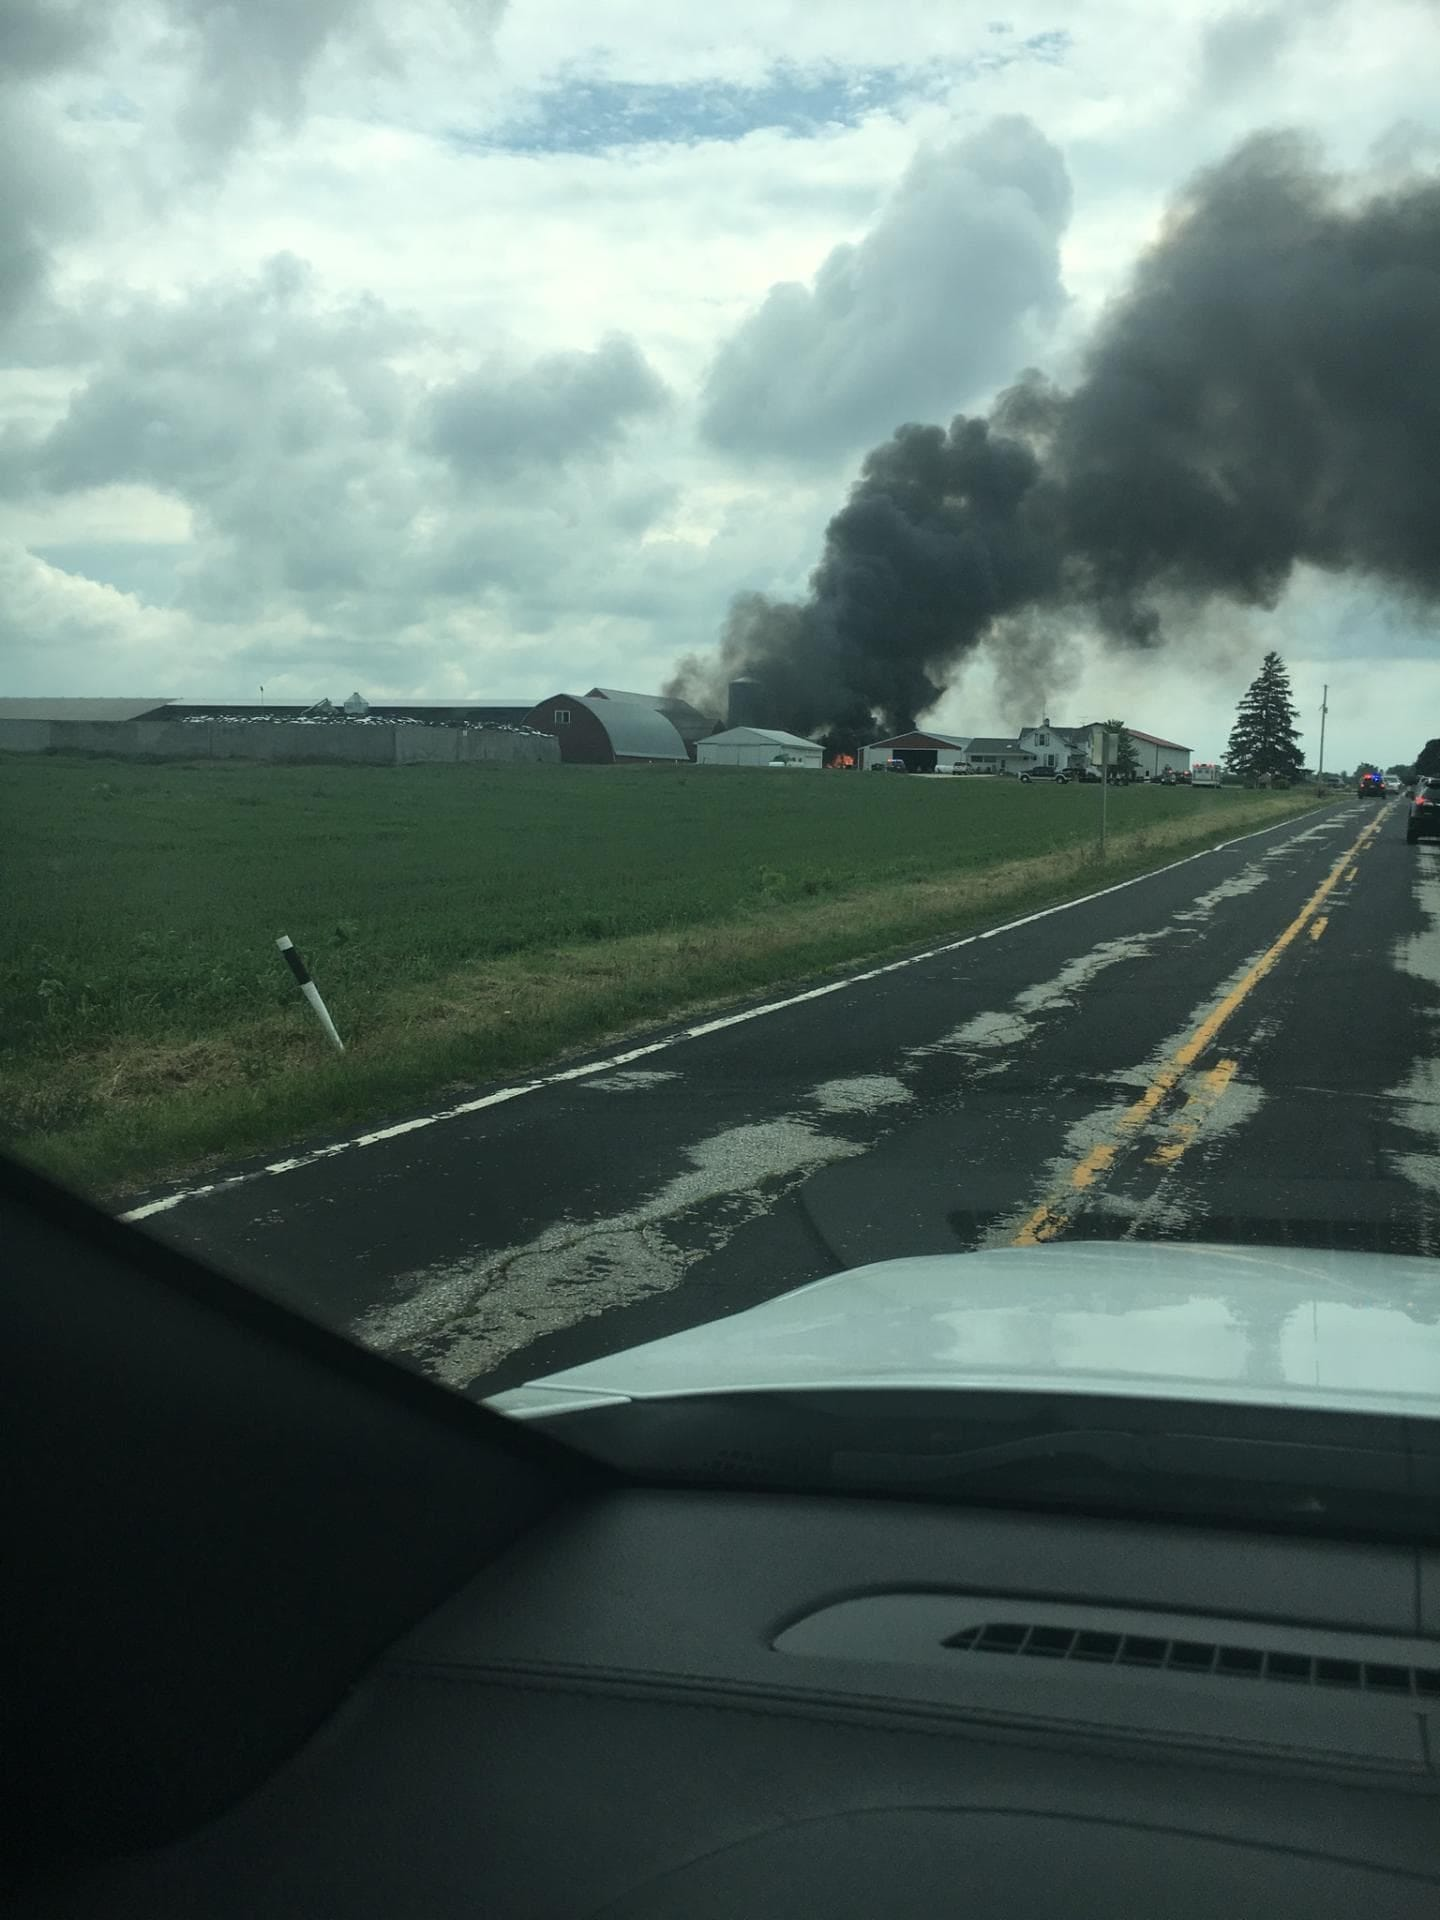 Pilot dead, two farm workers injured after plane crash near Sheboygan airport Image